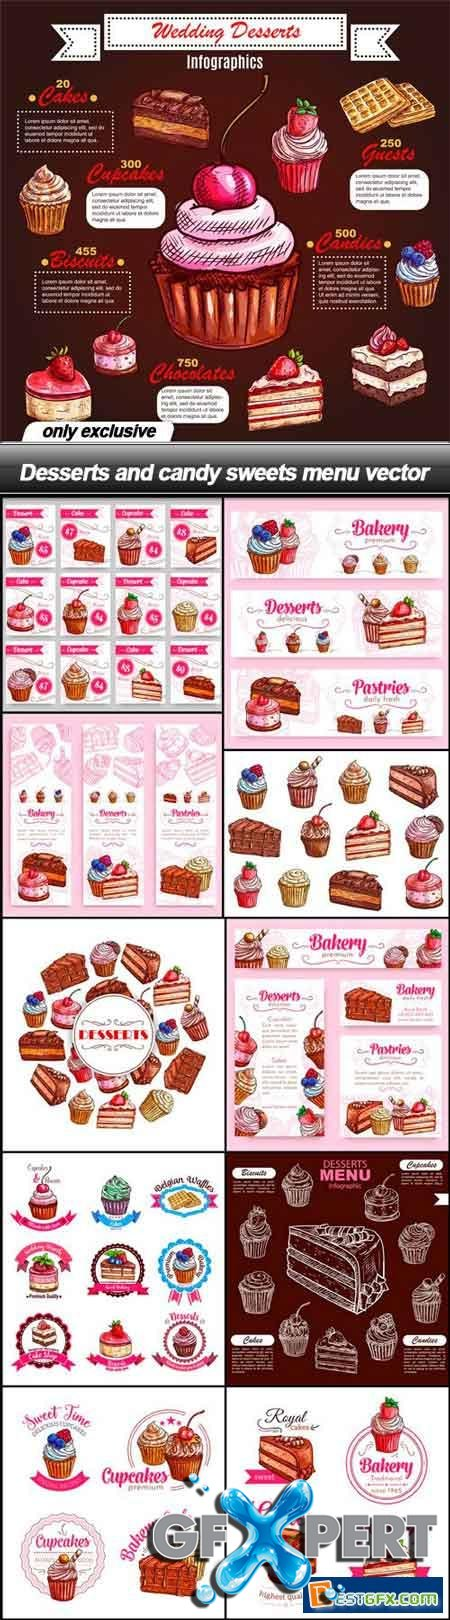 Desserts and candy sweets menu vector - 11 EPS